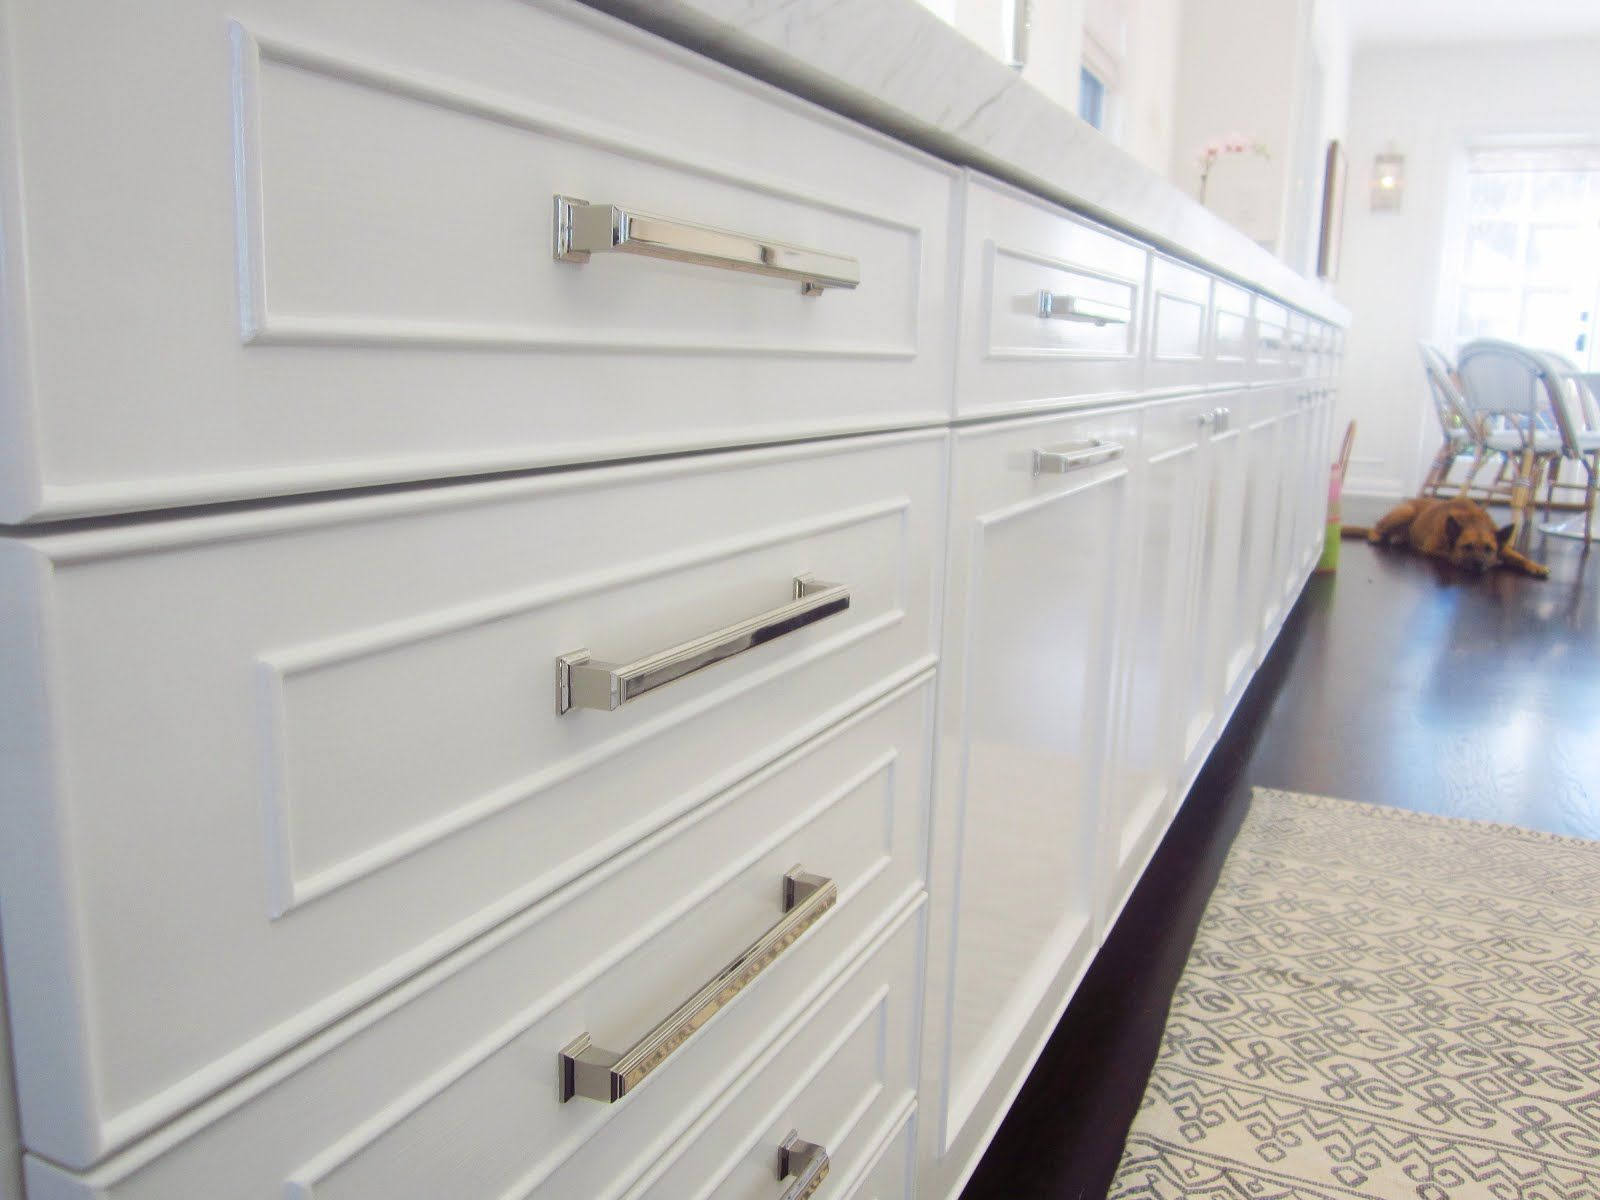 Kitchen cabinet hardware is probably considered as the